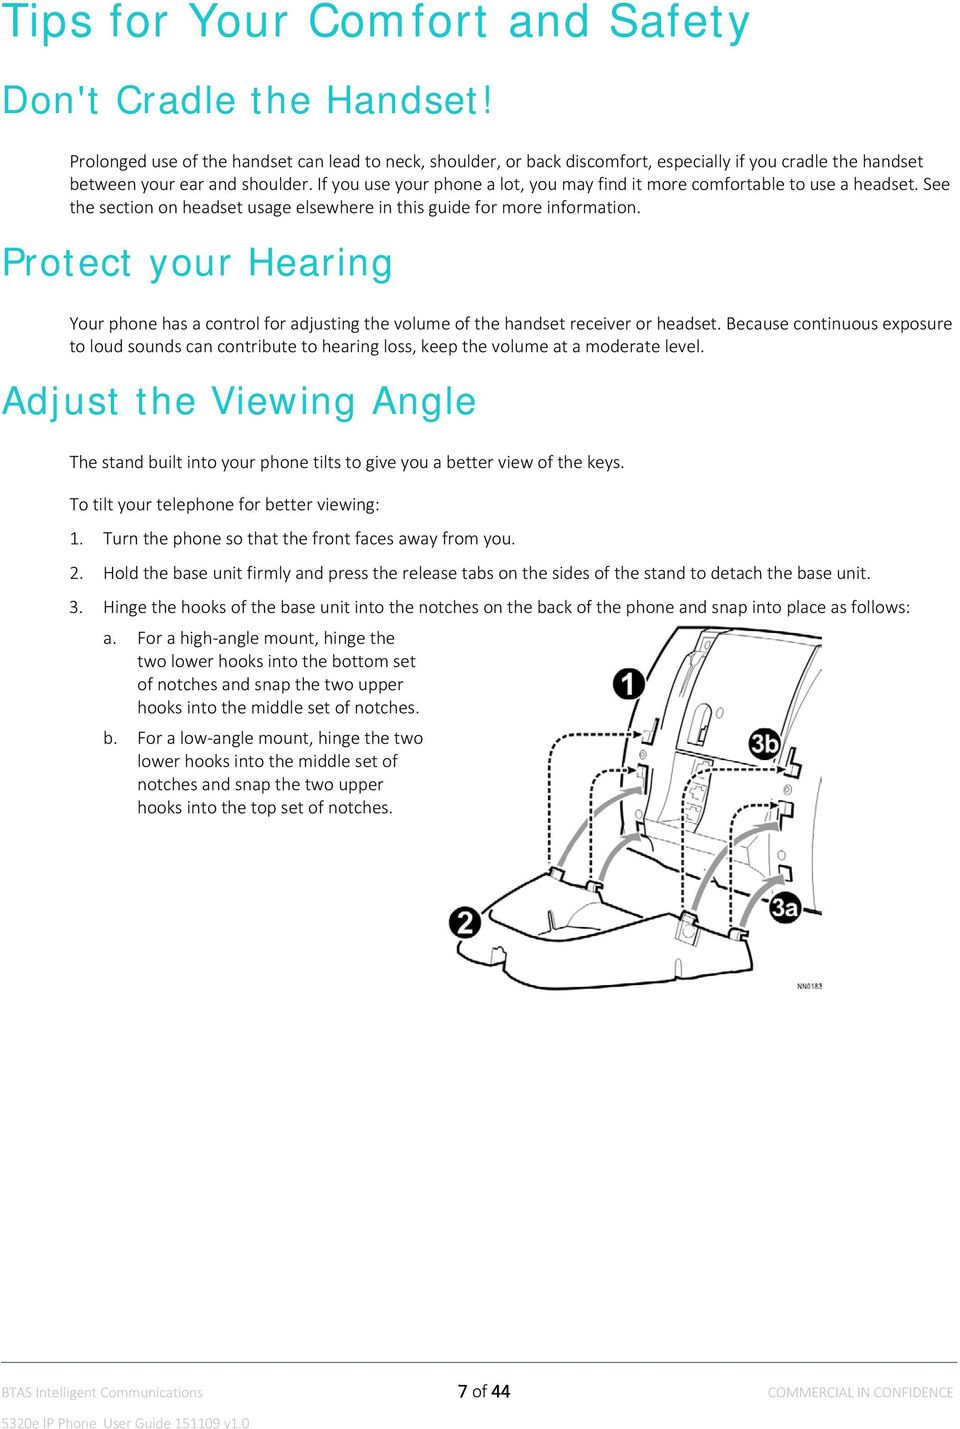 If you use your phone a lot, you may find it more comfortable to use a headset. See the section on headset usage elsewhere in this guide for more information.